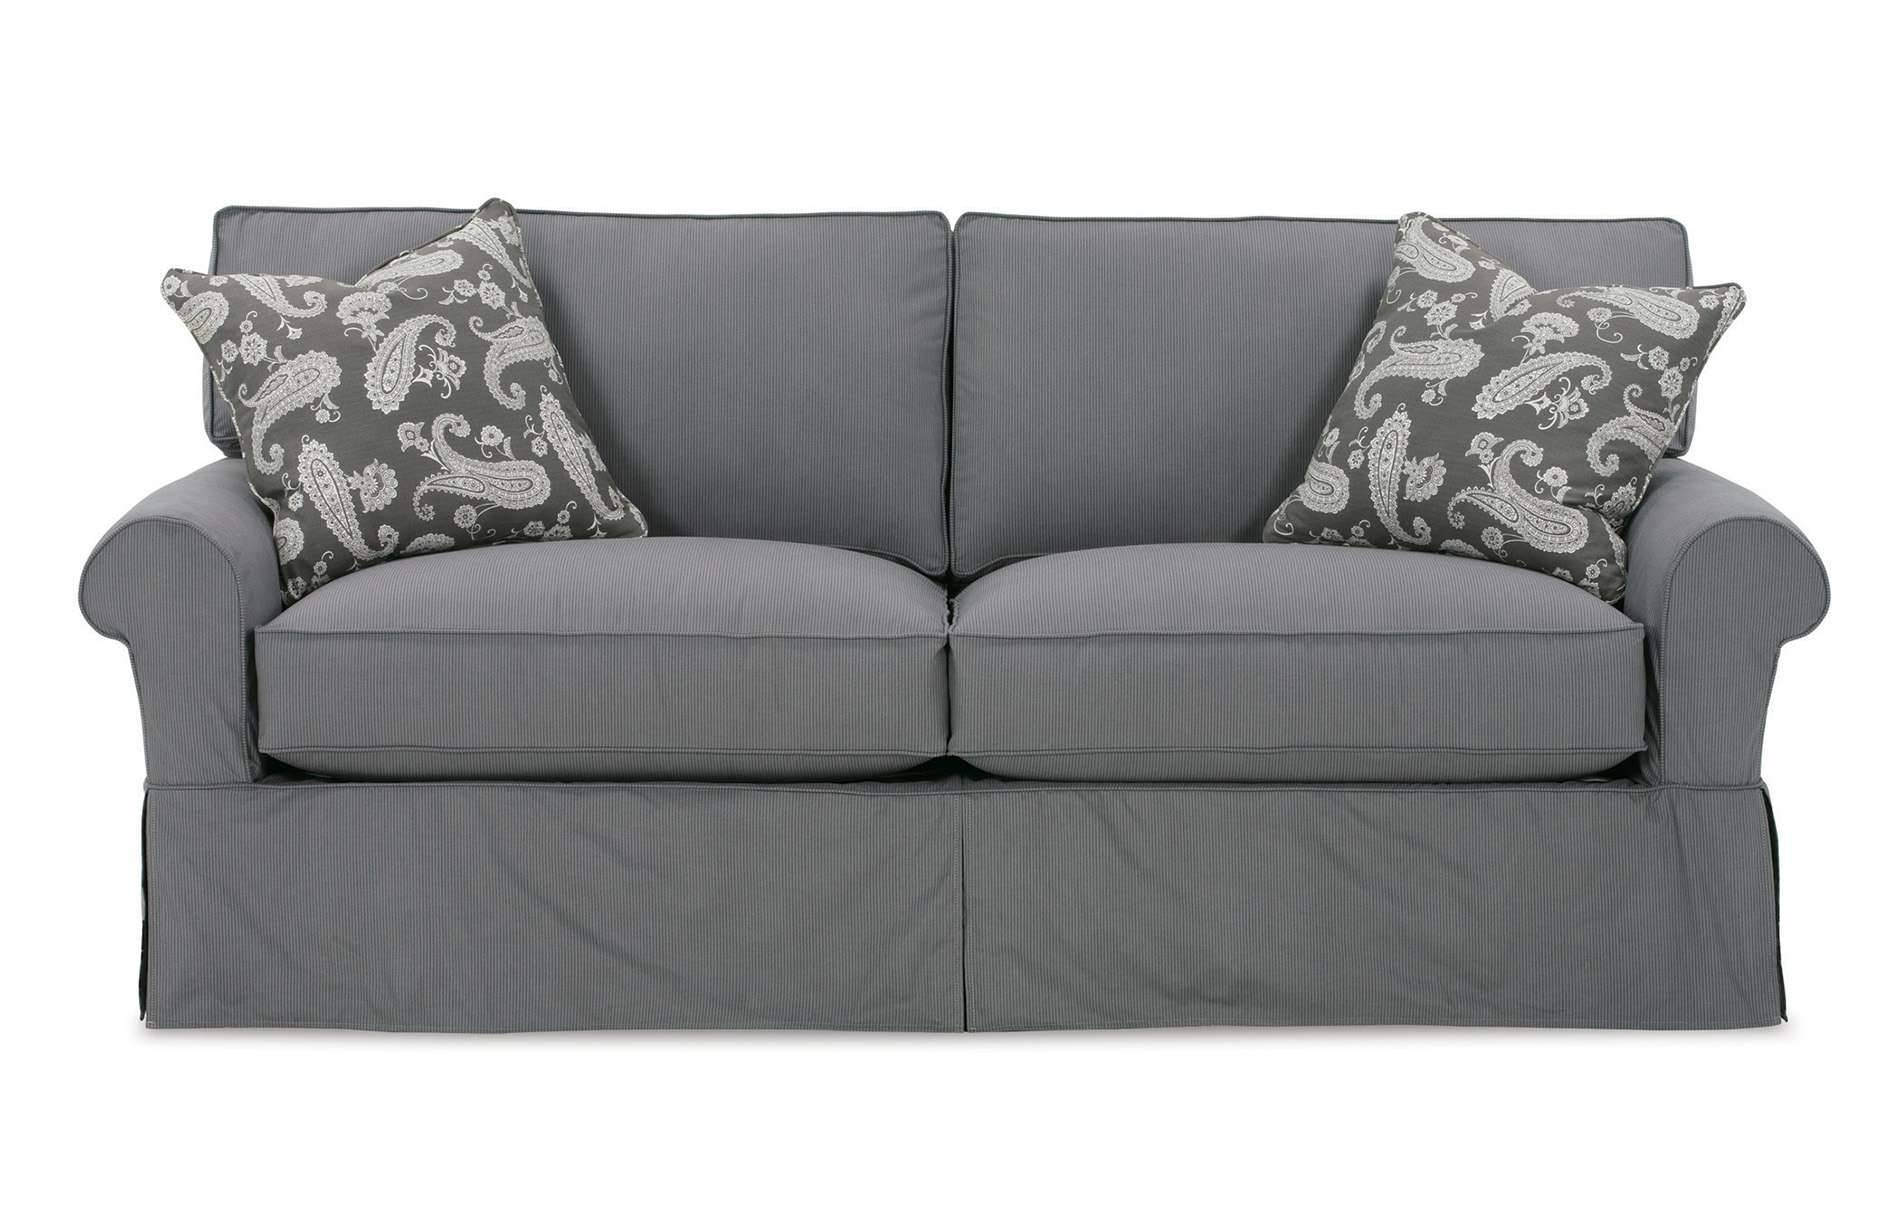 Queen Sleeper Sofa Slipcover - Tourdecarroll within King Size Sleeper Sofa Sectional (Image 15 of 30)